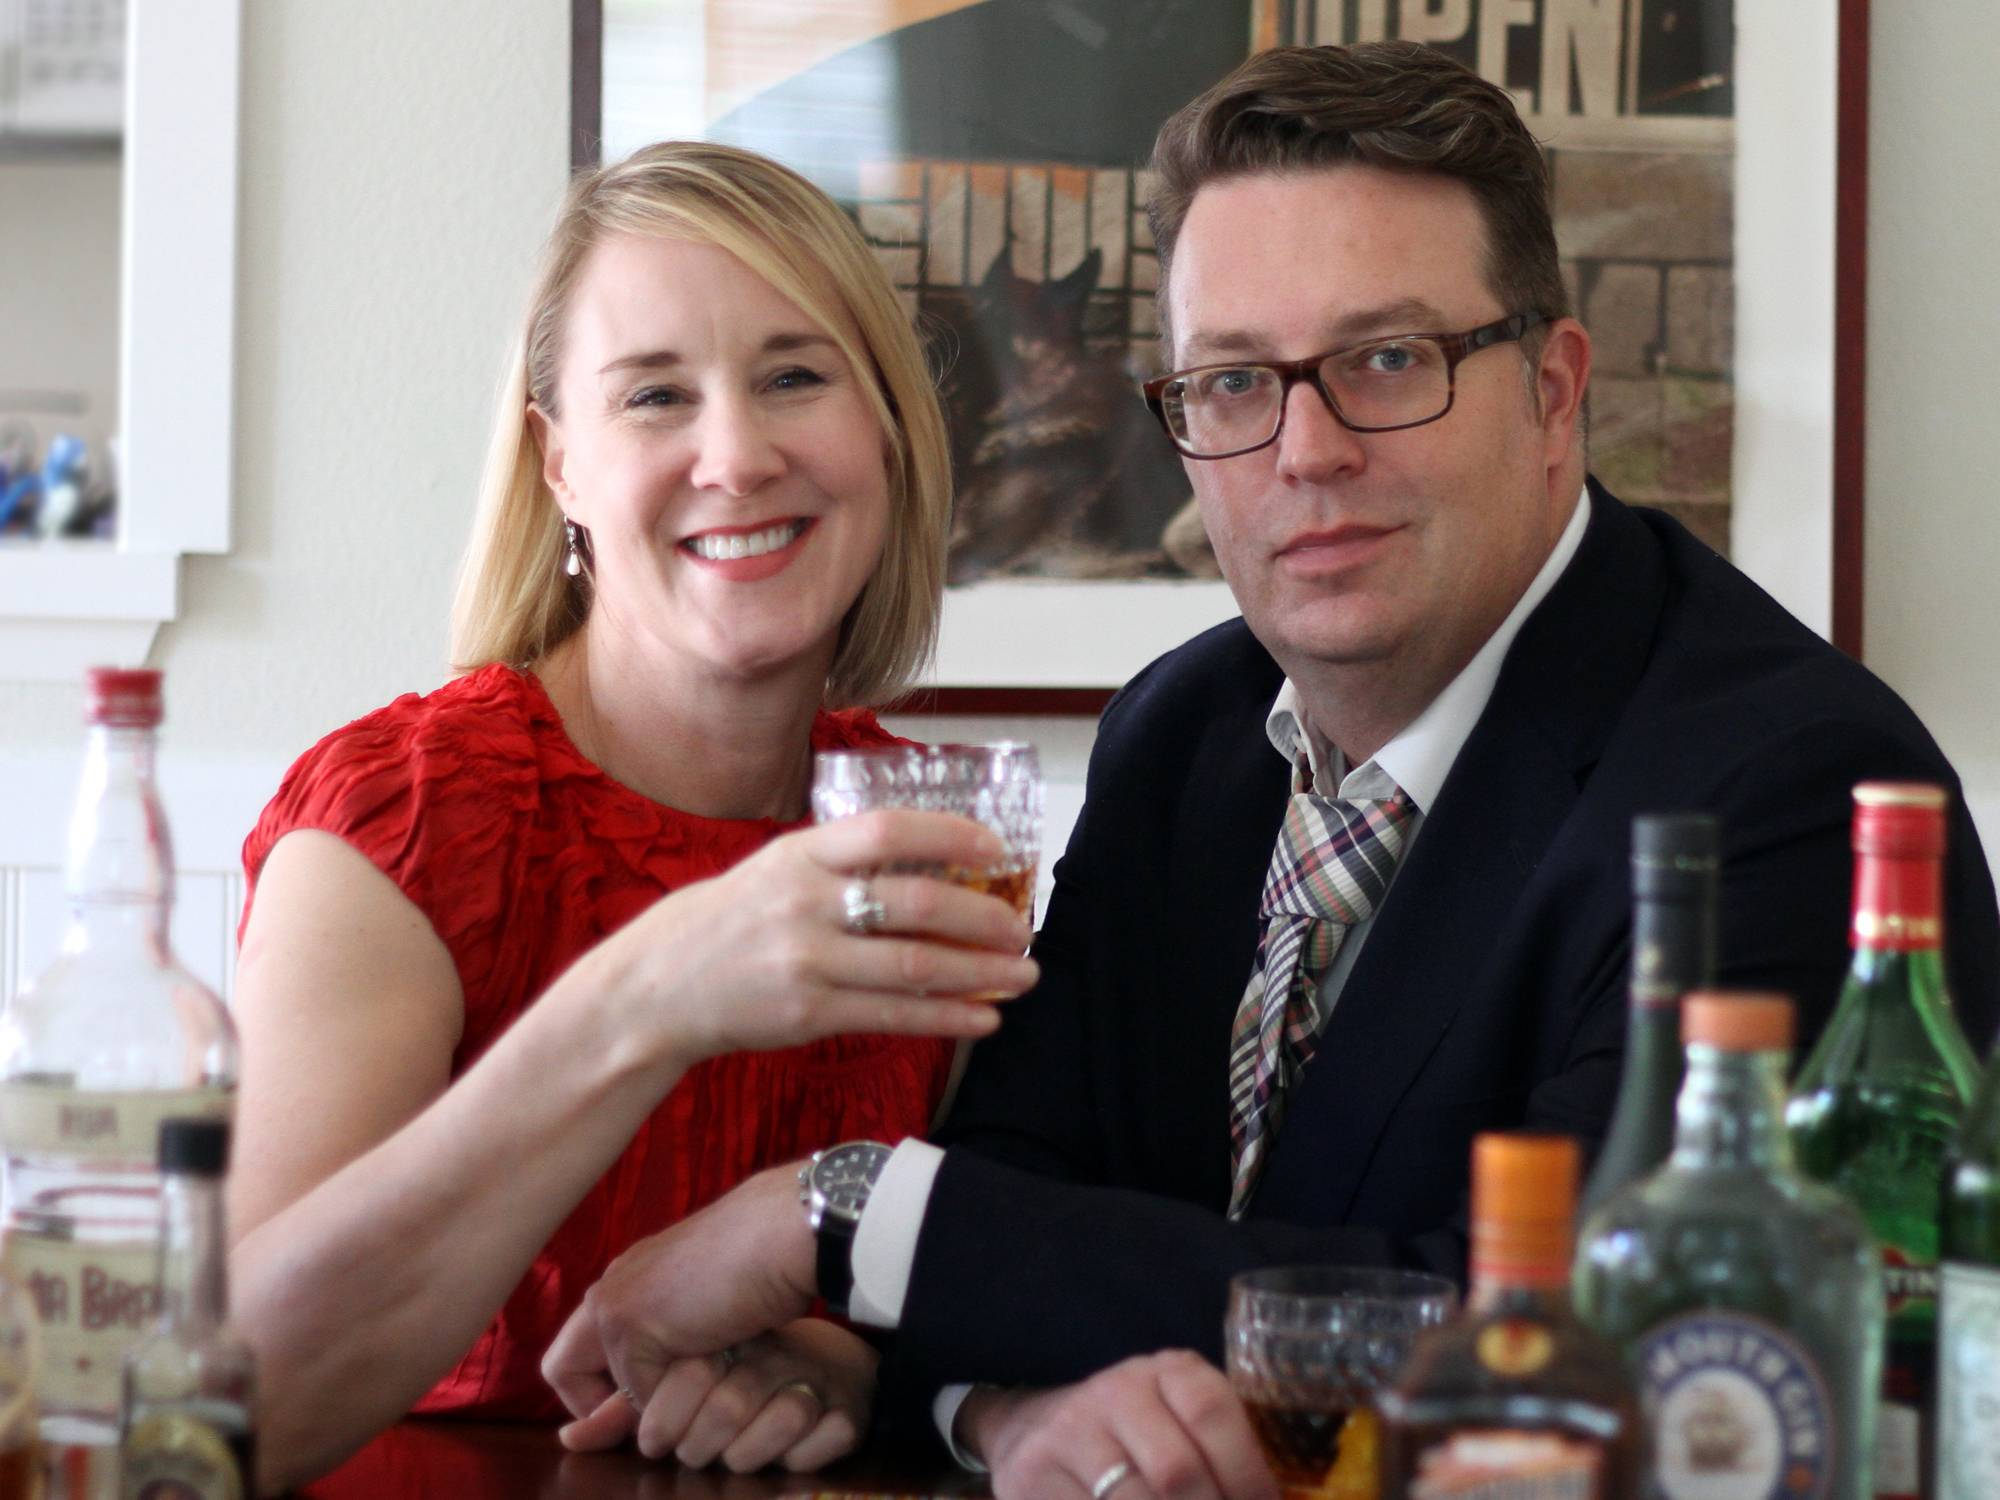 Lesley Jacobs Solmonson and her husband, David Solmonson, wrote a book filled with cocktail recipes focusing on only the most essential ingredients for great drinking.